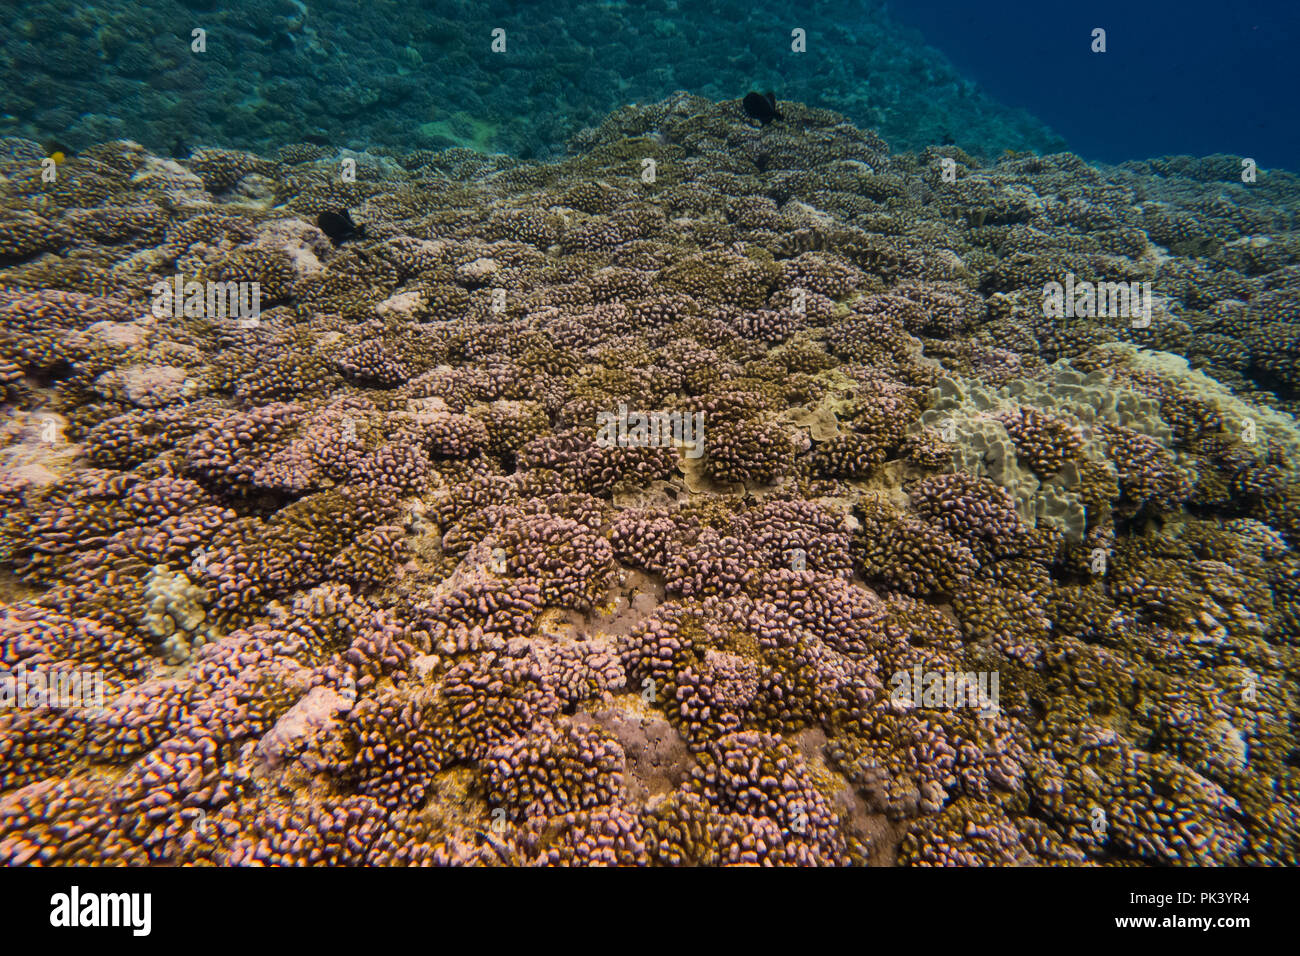 Snorkeling at Flint Island in the southern line islands of Kiribati showing the dead coral from a recent coral bleaching event due to climate change. - Stock Image